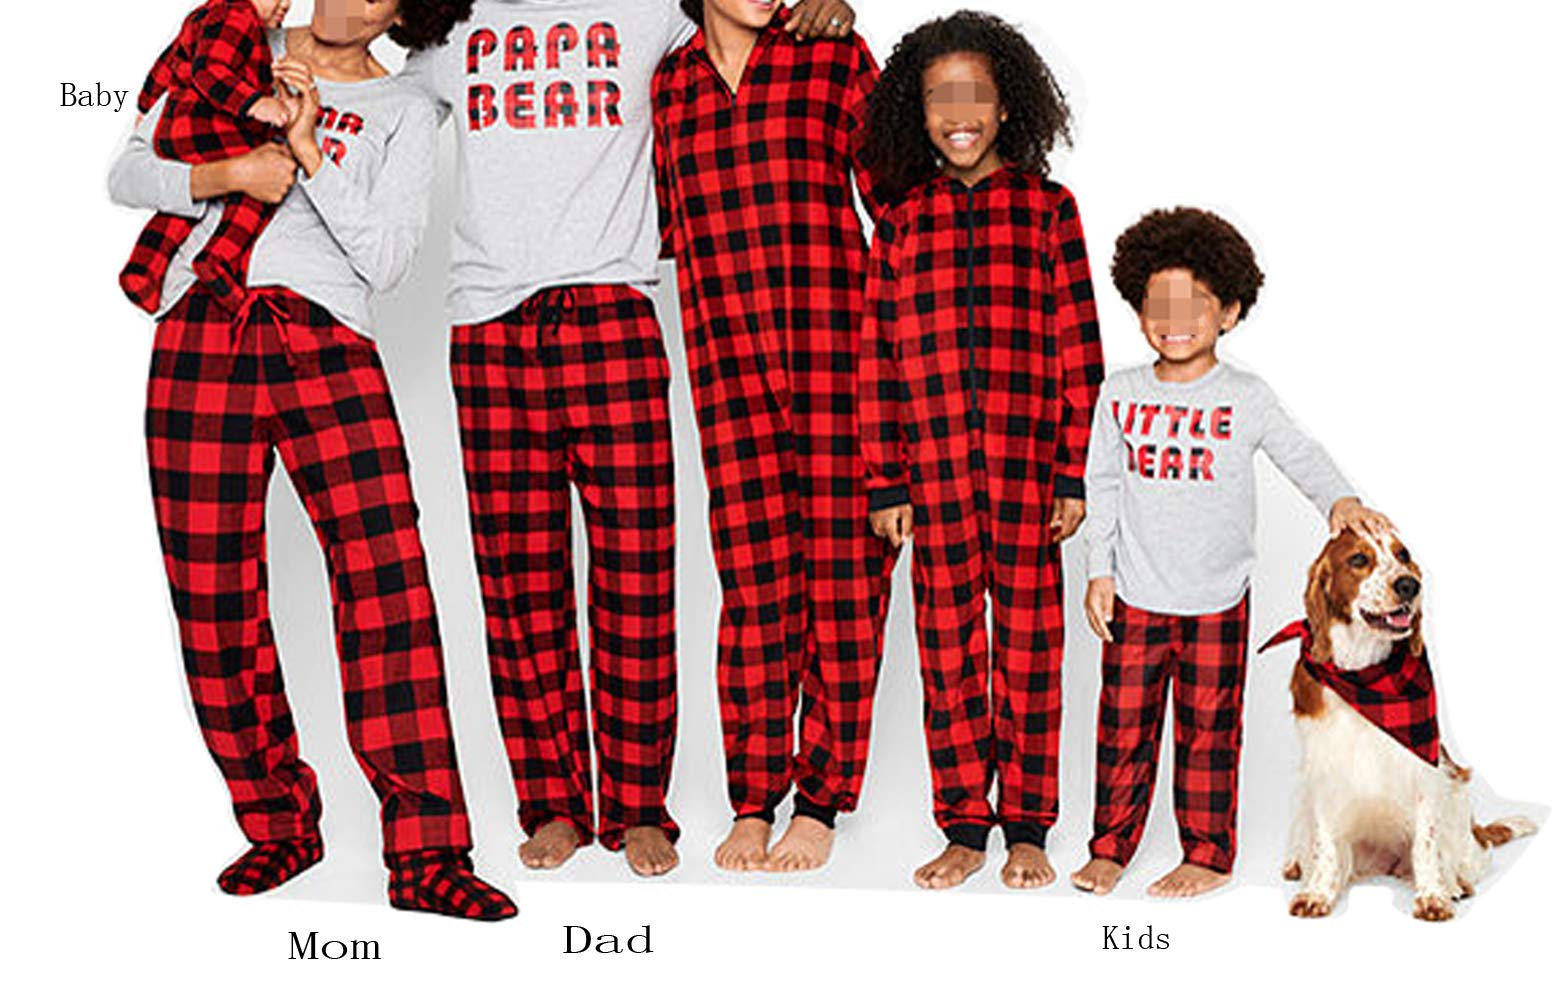 Matching Family Christmas Boys Girls Pajamas Papa Bear Letter Plaid Kids Sleepwear Children Clothes (Baby(0-3Months), Grey and Plaid)